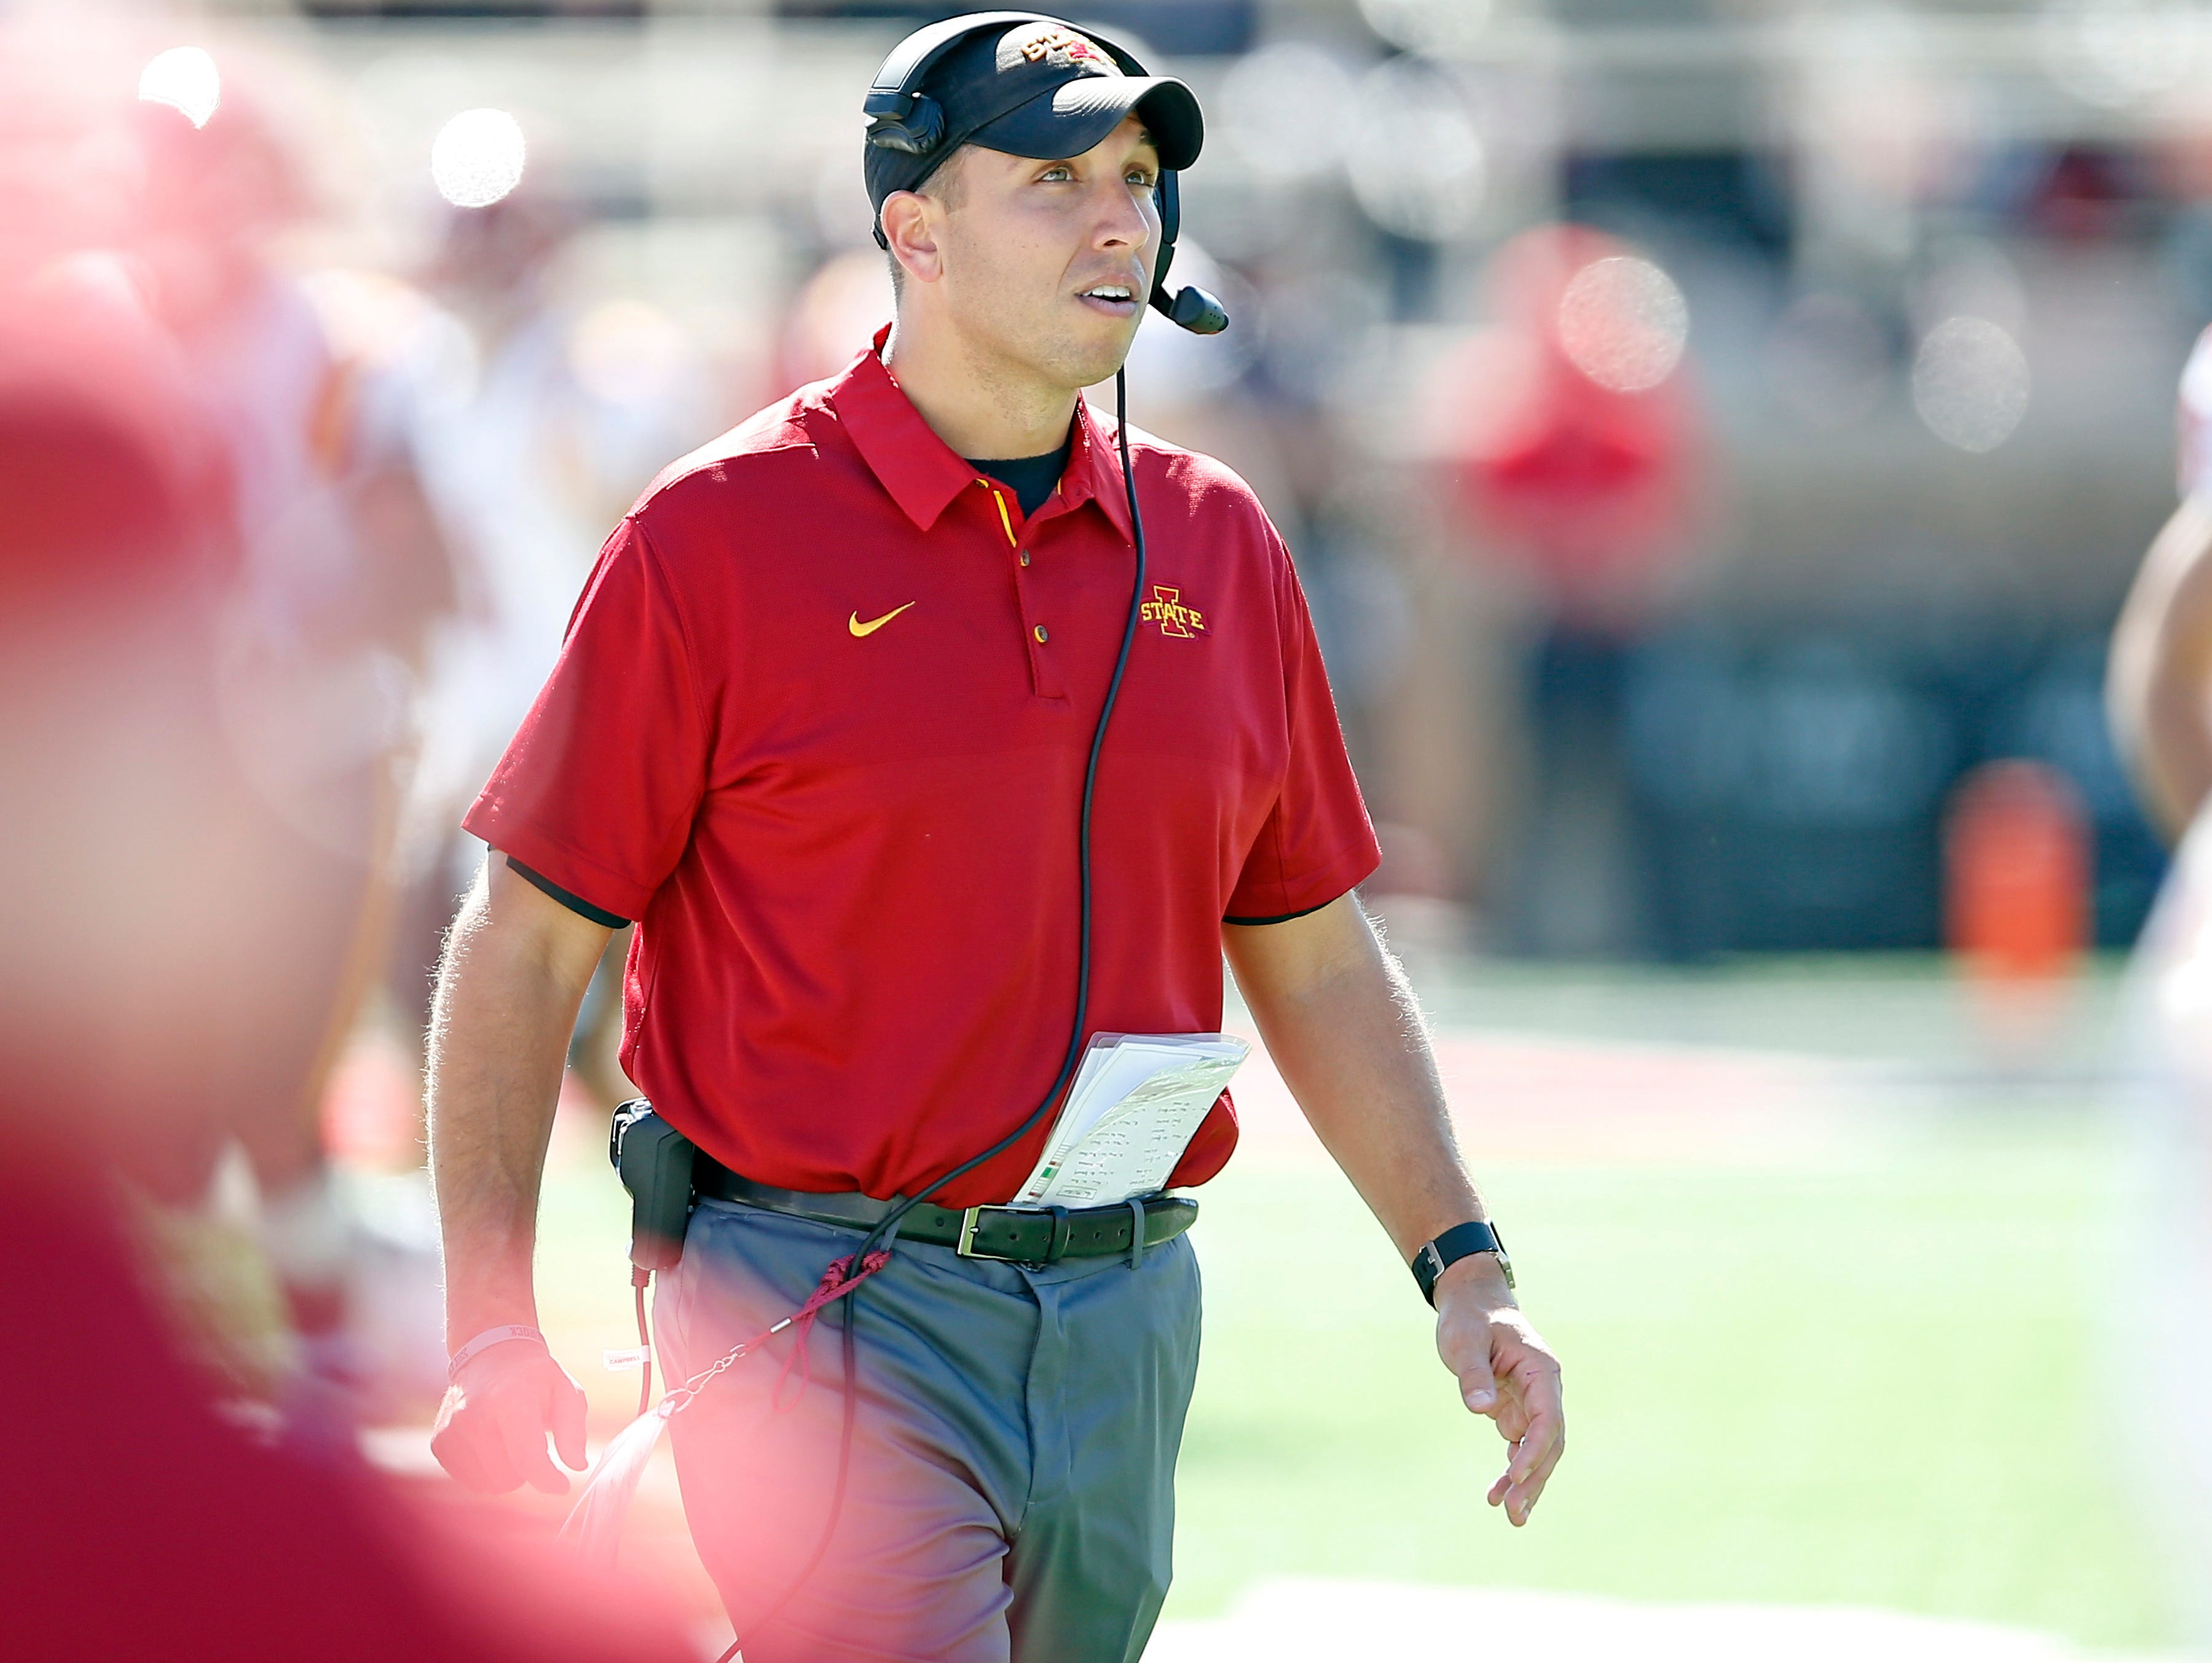 Iowa State coach Matt Campbell walks down the field during an NCAA football game against Texas Tech, Saturday, Oct. 21, 2017, at Jones AT&T Stadium in Lubbock, Texas.